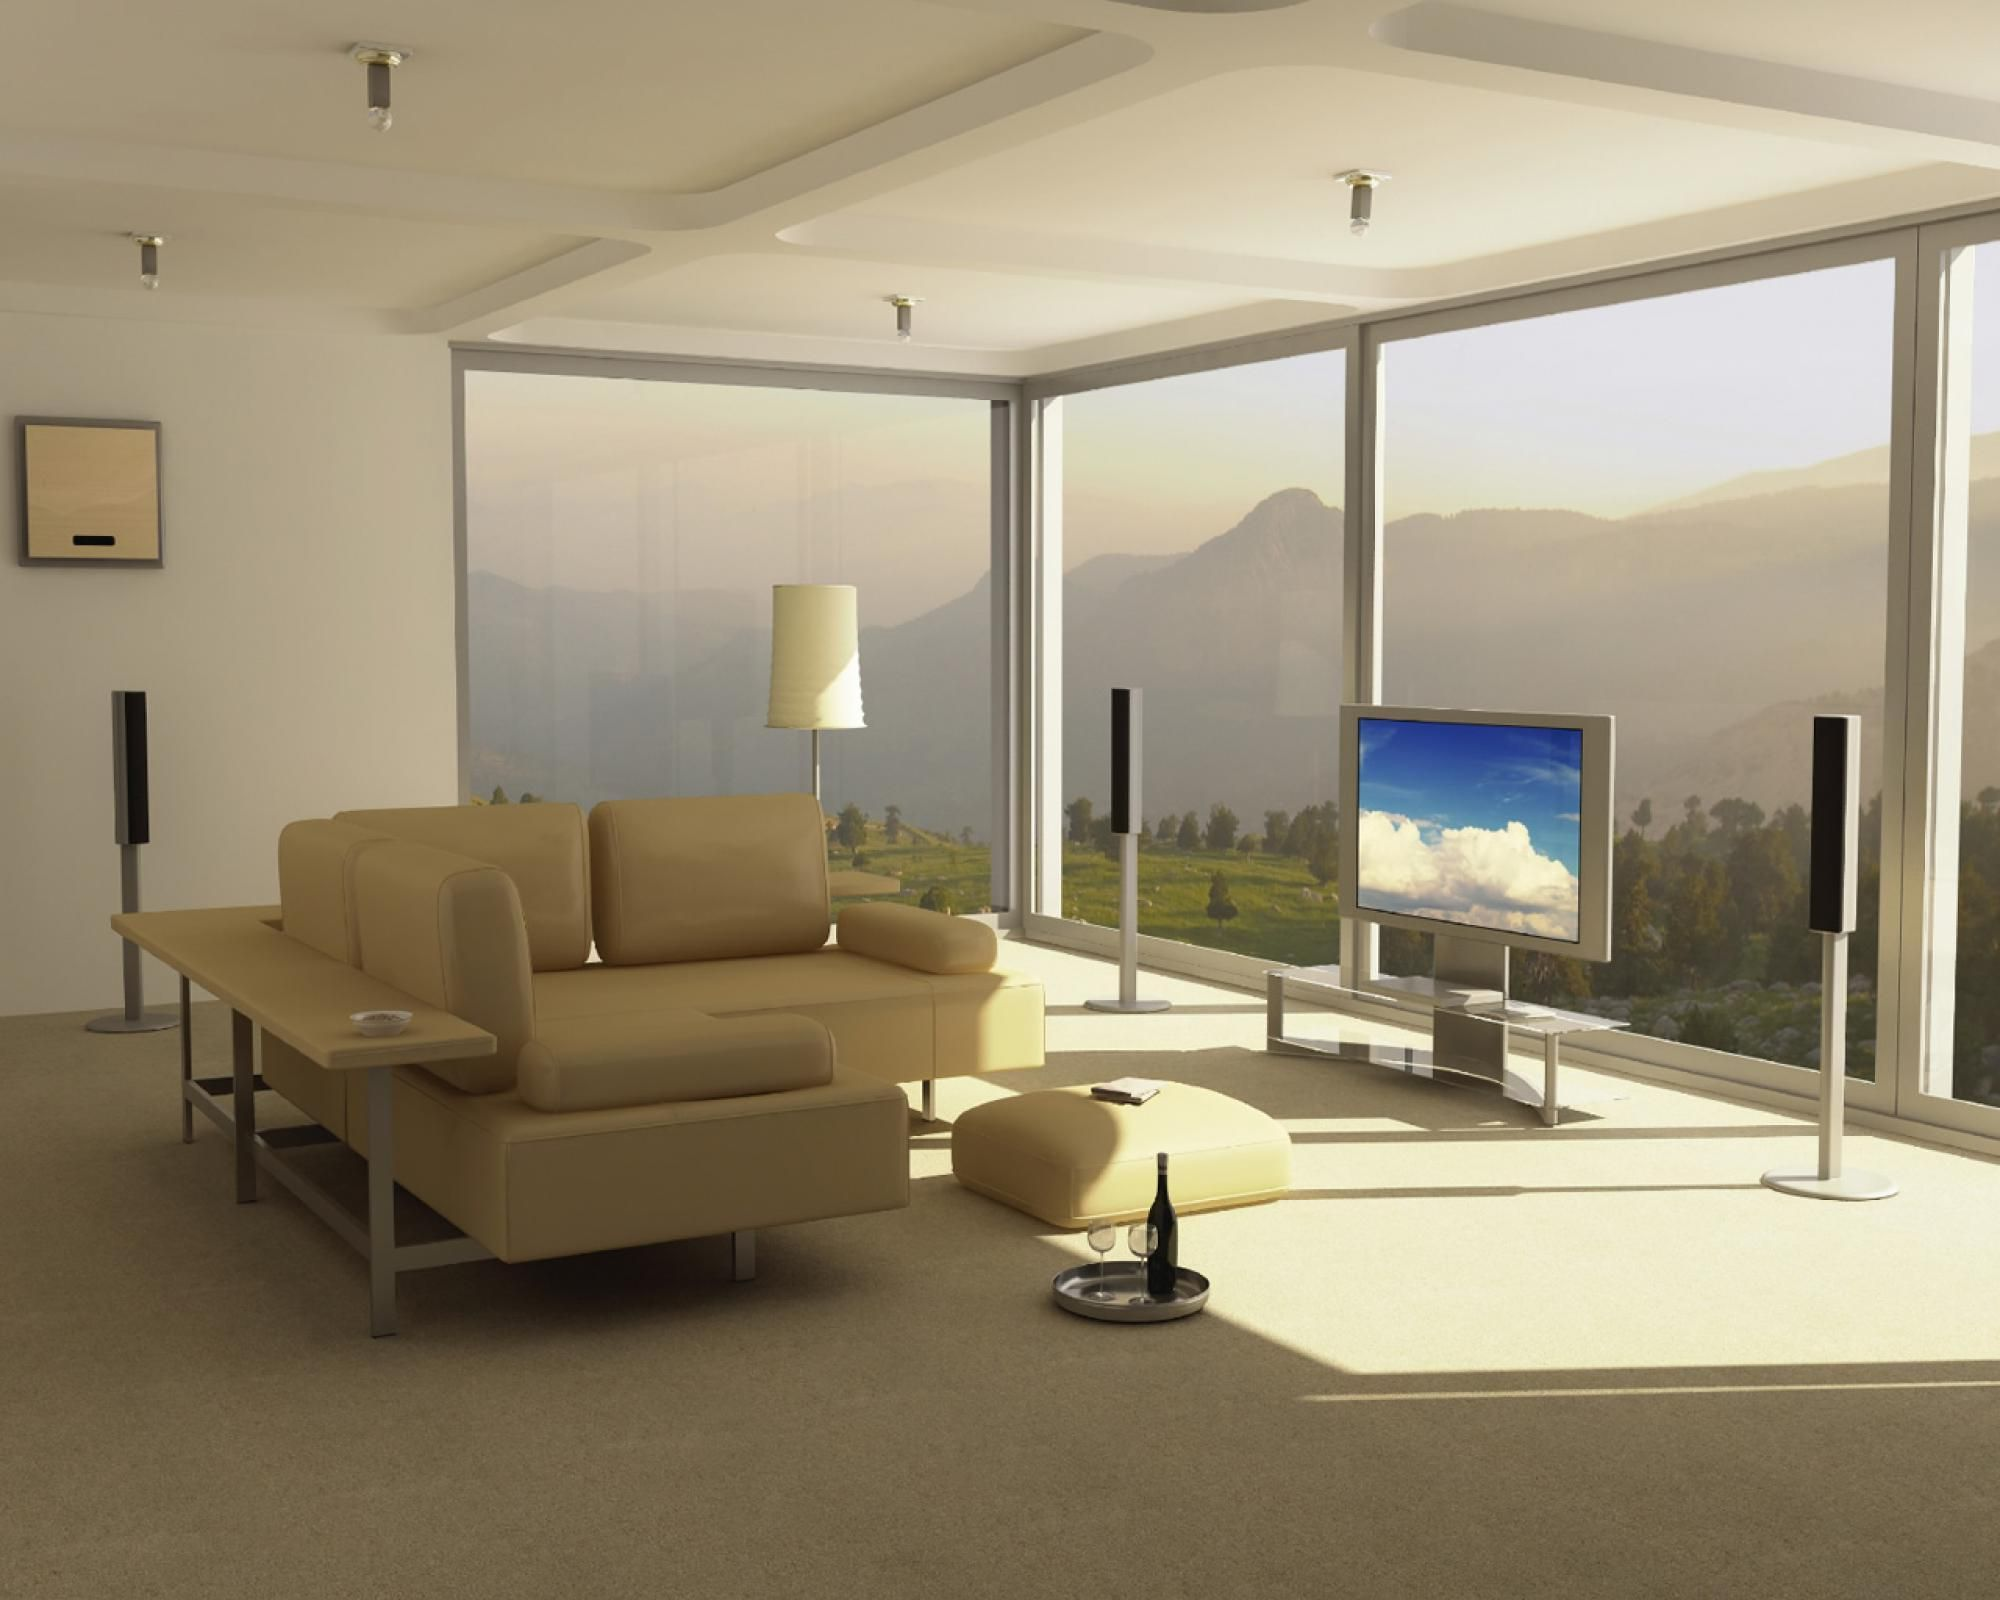 Best of 500 contemporary interiors - Awesome Modern Design In Living Room Beige Sectional Sofa Plus Benches Low Table Also Tv On